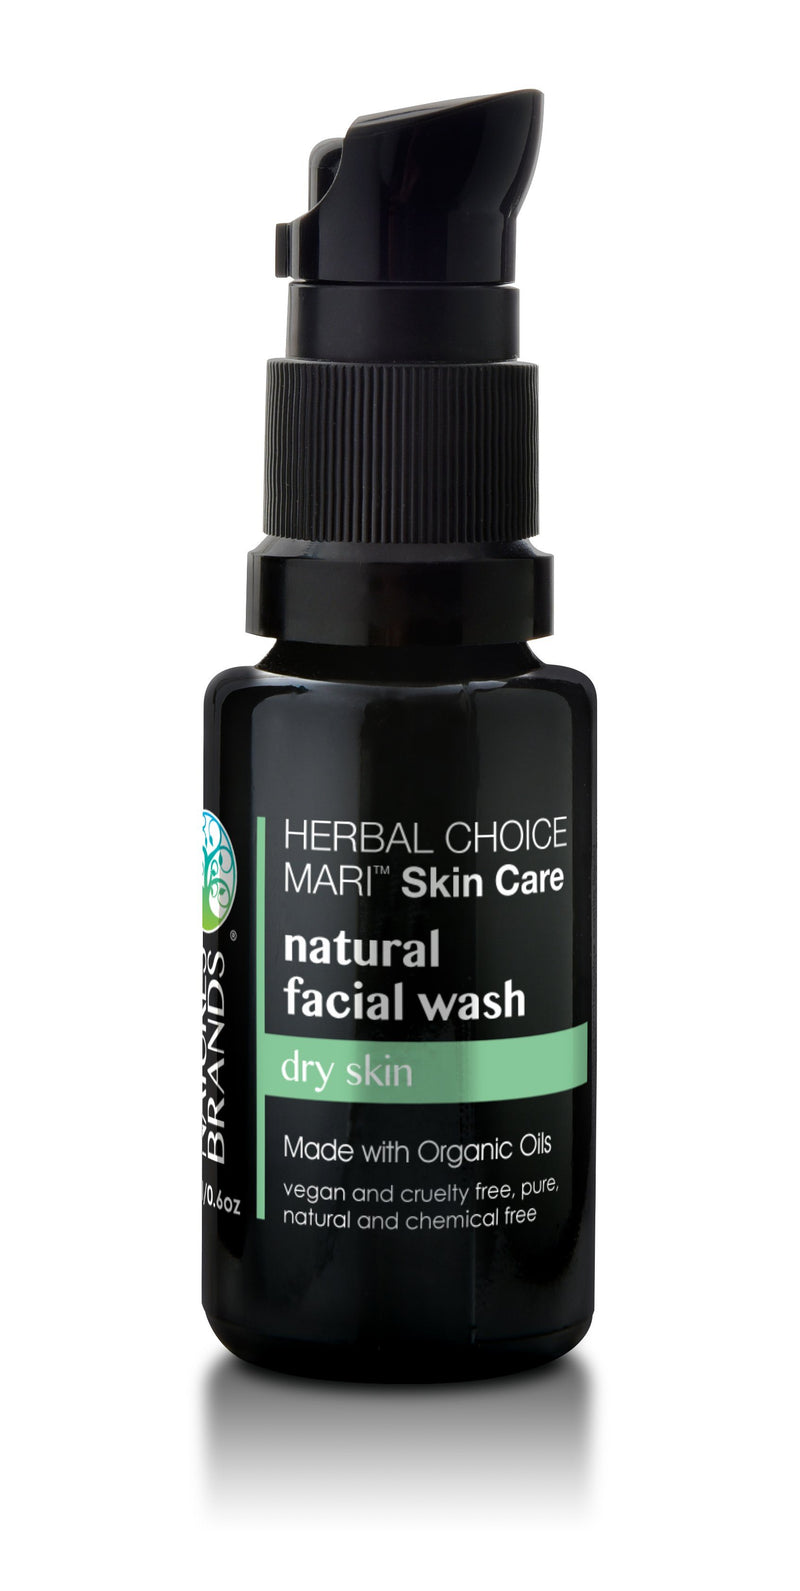 Herbal Choice Mari Natural Facial Wash; Made with Organic - Herbal Choice Mari Natural Facial Wash; Made with Organic - 0.5floz